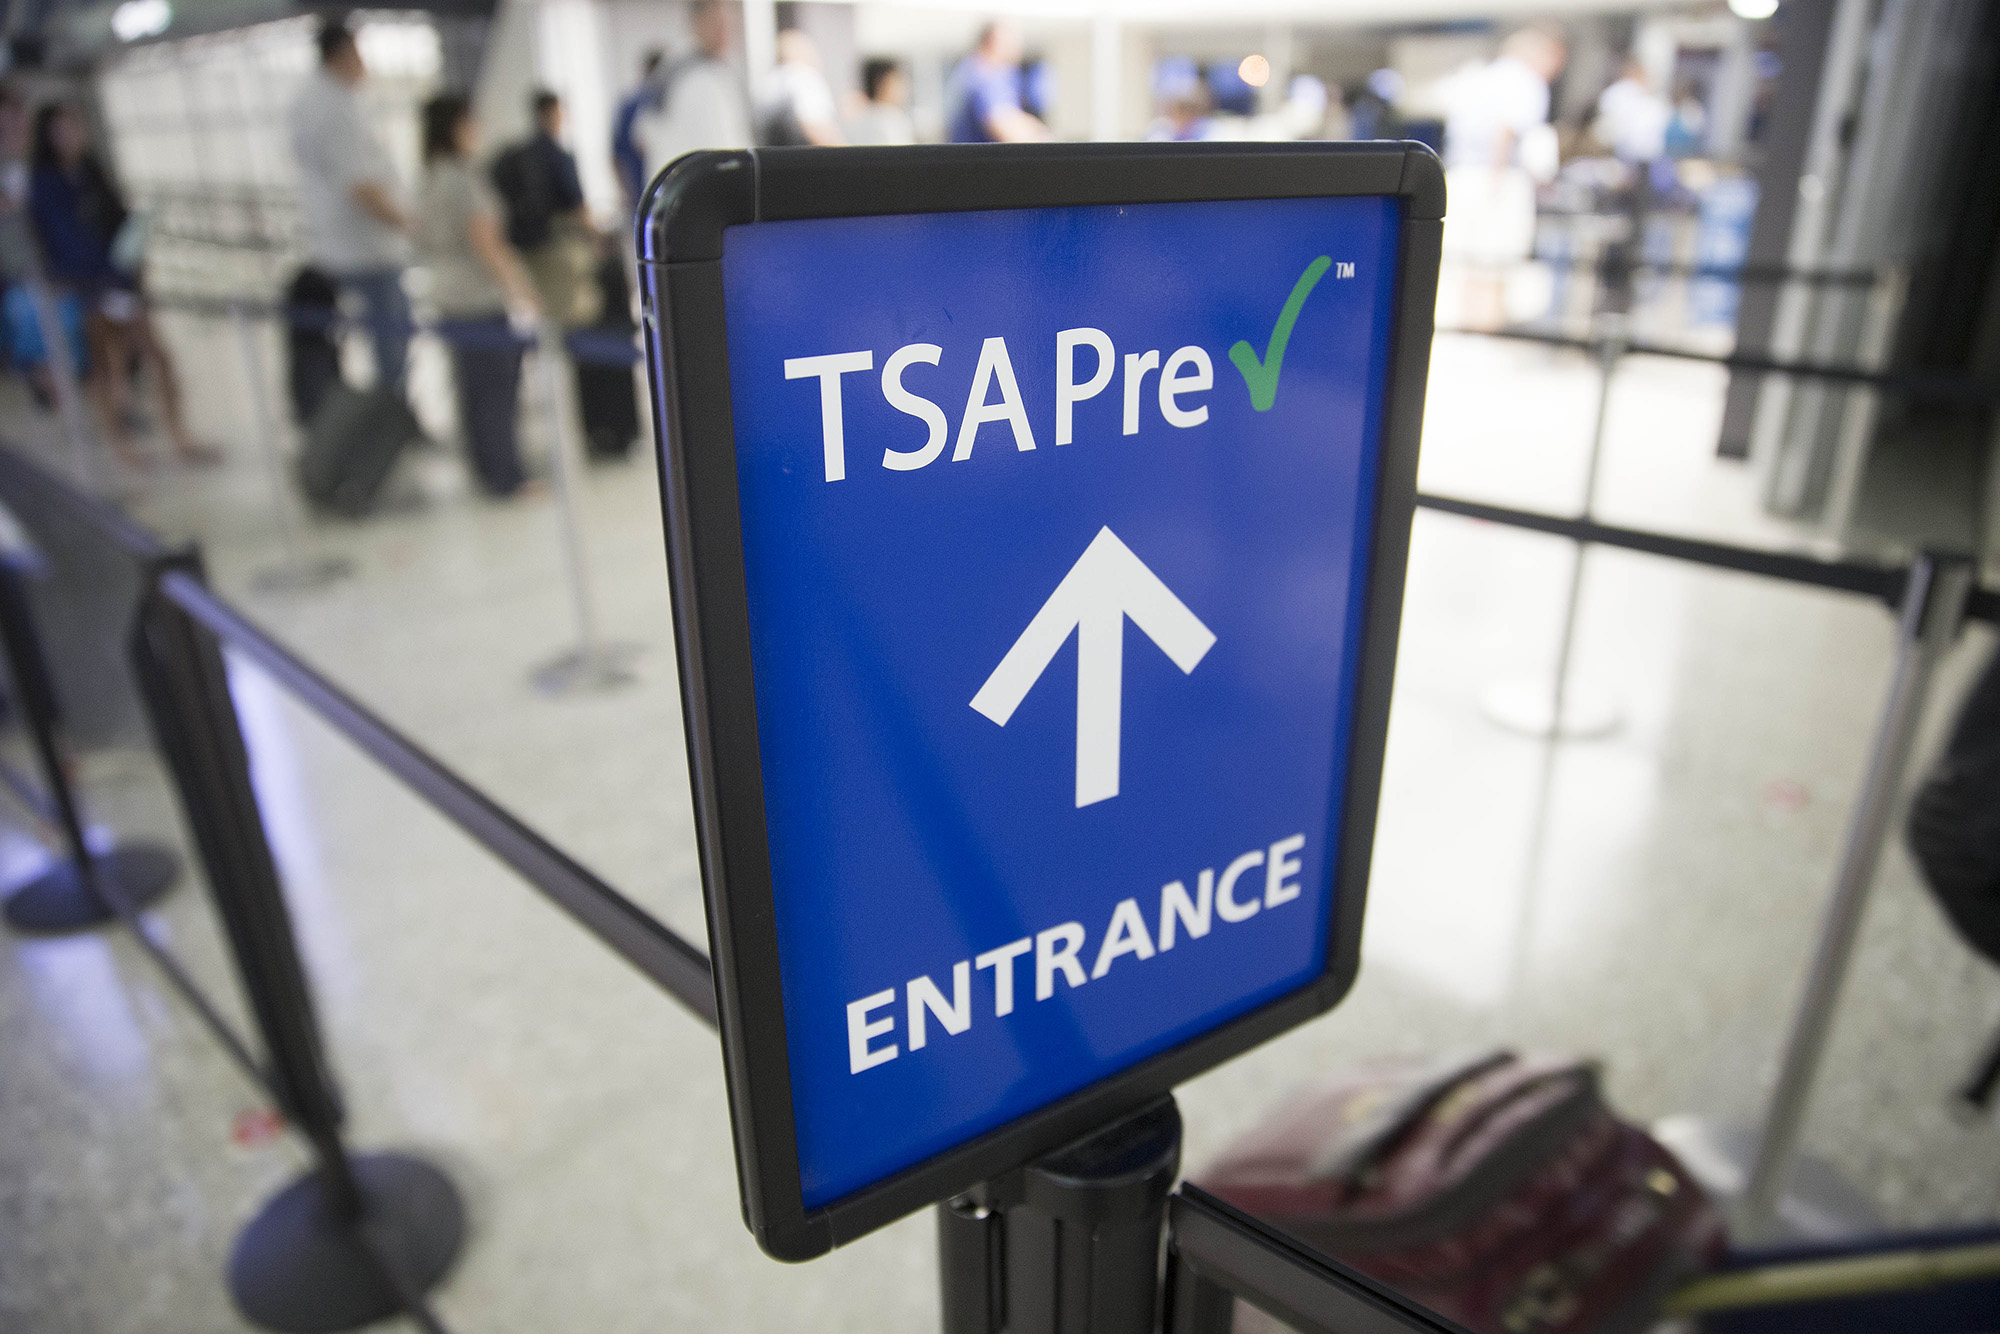 Tsa pre approved list